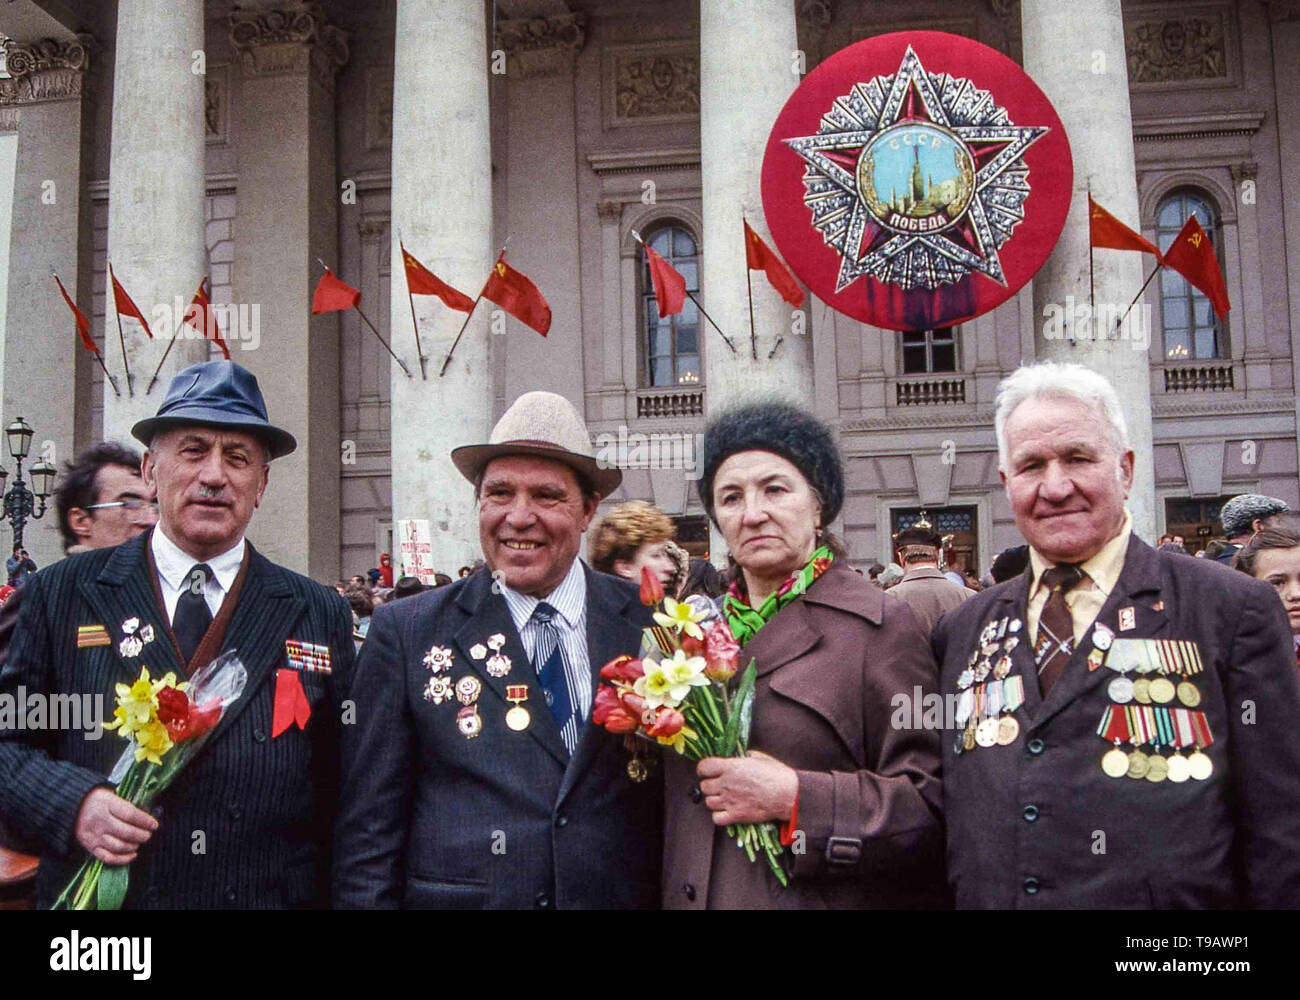 Moscow, Russia. 9th May, 1987. Veterans of World War 2 gather to celebrate Victory Day, the surrender of Nazi Germany in 1945, each year on May 9 in front of the historic Bolshoi Theater in Moscow. Credit: Arnold Drapkin/ZUMA Wire/Alamy Live News - Stock Image